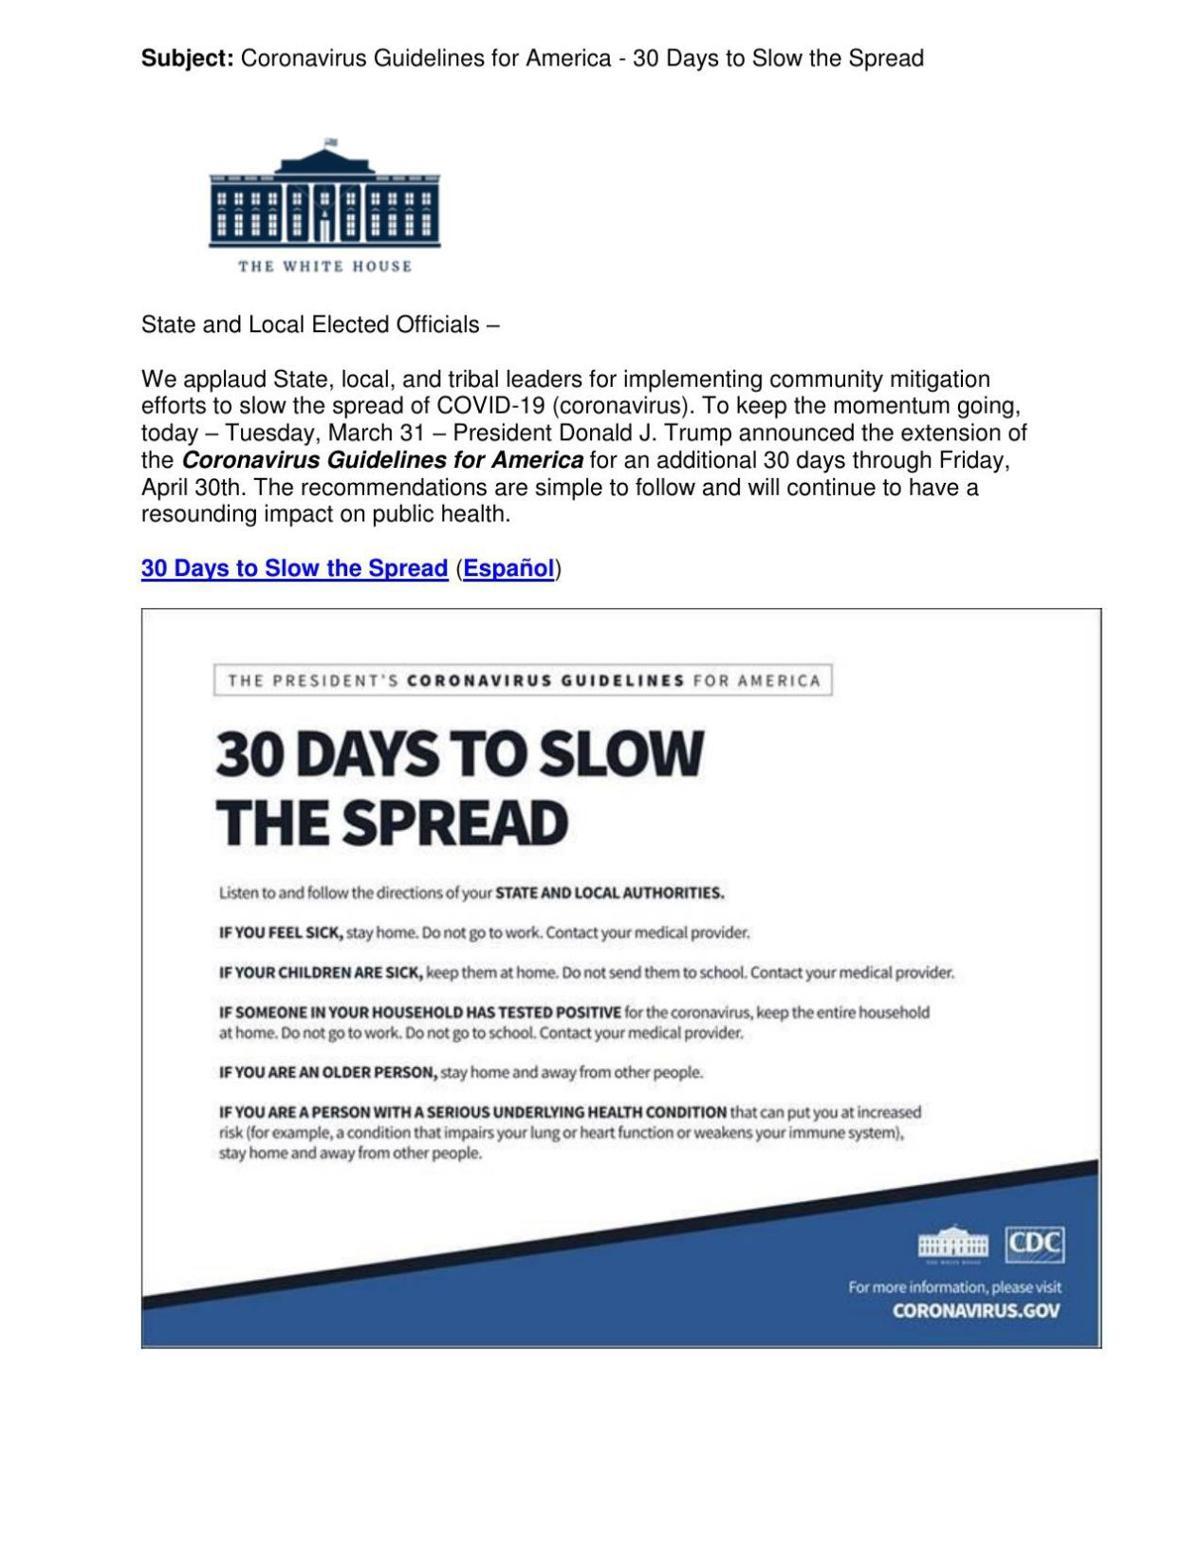 30 Days to Slow the Spread flyer